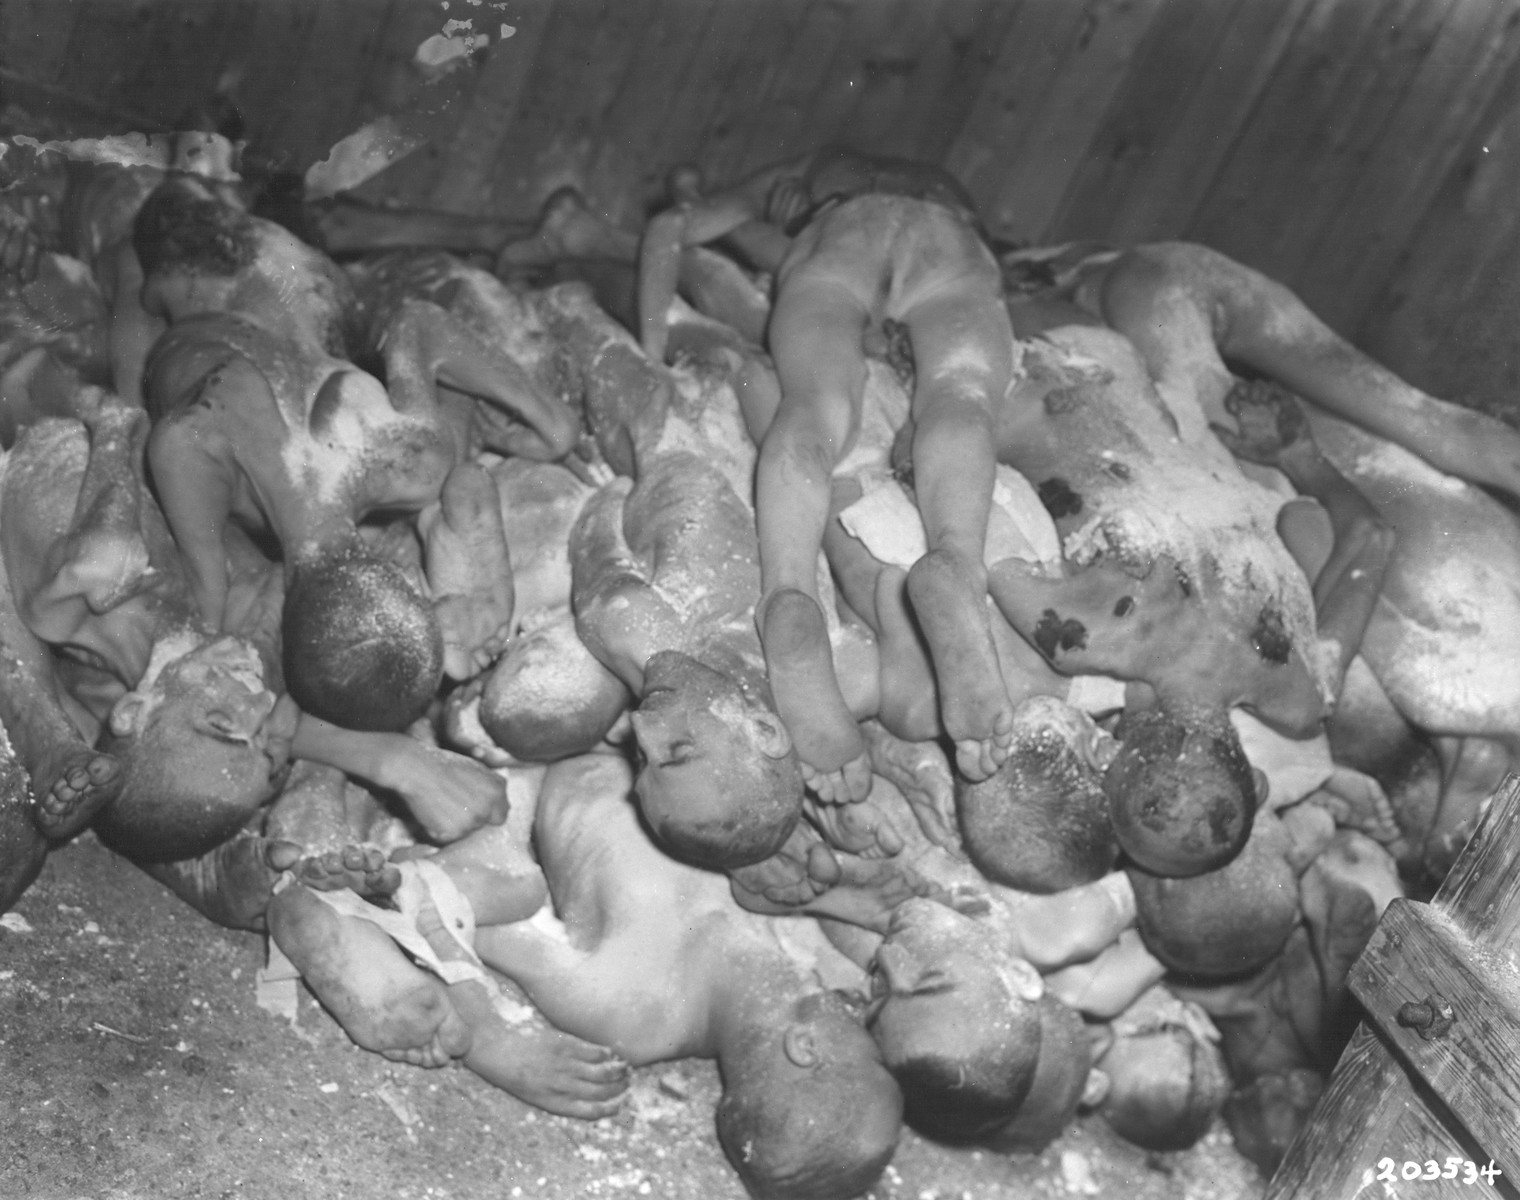 "A pile of naked bodies stacked in a shed in the Ohrdruf concentration camp.  The original caption reads ""Bodies of victims of Nazi brutality are piled in a shed at a prison camp.  Too ill to be moved, they were murdered when the U.S. Third Army advance made German retreat necessary.""  The original Signal Corps caption reads, ""SS MURDER CAMP UNCOVERED.  The swift advance of the Third U.S. Army's famous Fourth Armored Division uncovered the horror of a Nazi SS murder camp at Ohrdruf, entered April 4, 1945, after the fall of Gotha, eight miles to the north.  American soldiers who seized the camp found the courtyard littered with the bodies of Czechoslovakian, Russian, Belgian and French slave laboreres, slain because they were too weak to be evacuated.  In a shed, they found a stack of 44 naked and lime-covered bodies.  According to survivors, 3,000 to 4,000 prisoners had been killed by SS troops, 70 being slain just before the Americans reached the camp.  The 80 survivors had escaped death or removal by hiding in the woods.  They reported that an average of 150 died daily, mainly from shooting or clubbing.  The Nazi system was  to feed prisoners a crust of bread a day, work them on tunneling until they were too weak to continue, then exterminate them and replace them with another 150 prisoners daily.  Led by Colonel Hayden Sears of the Fourth Armored Division, prominent German citizens of the town of Ohrdruf saw with their own eyes the horrors of SS brutality during a conducted tour of the Ohrdruf charnelhouse April 8, 1945.  As they stood over the slain prisoners, Colonel Sears said:  ""This is why Americans cannot be your friends...""  The enforced tour of the Germans ended with a visit to a wood where 10 bodies lay on a  grill, made of railways lines, ready for cremation.  Colonel Sears asked a uniformed German medical officer:  ""Does this meet with your conception of the German master race?""  The officer faltered and at last answered:  I cannot believe that Germans did this.""  """